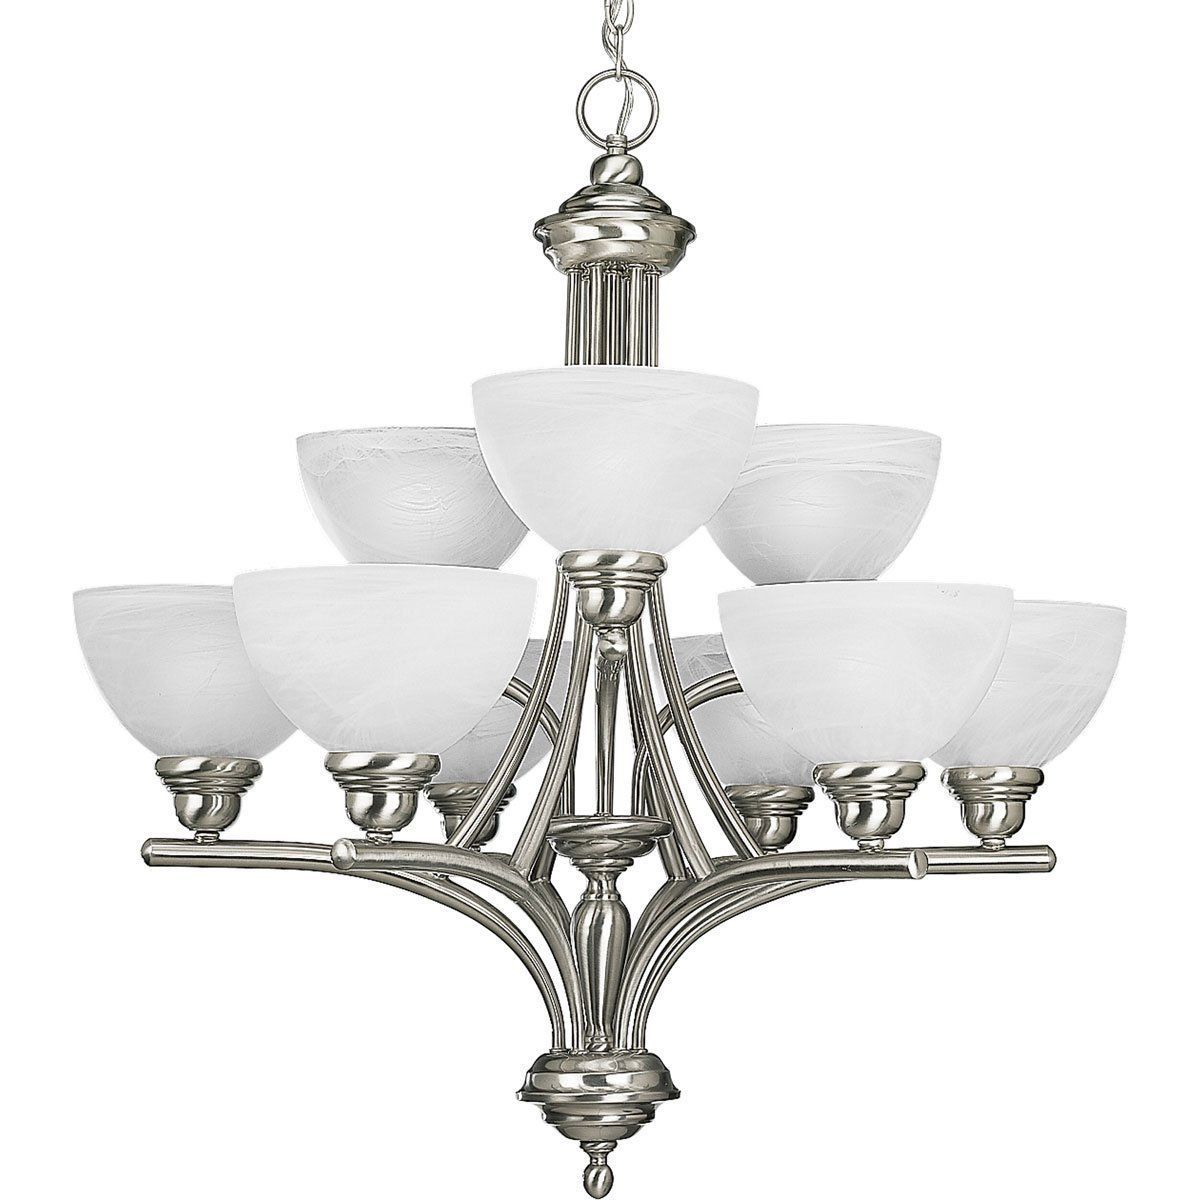 Glendale Collection Brushed Nickel Hanging Chandelier Light Kitchen P4085-09